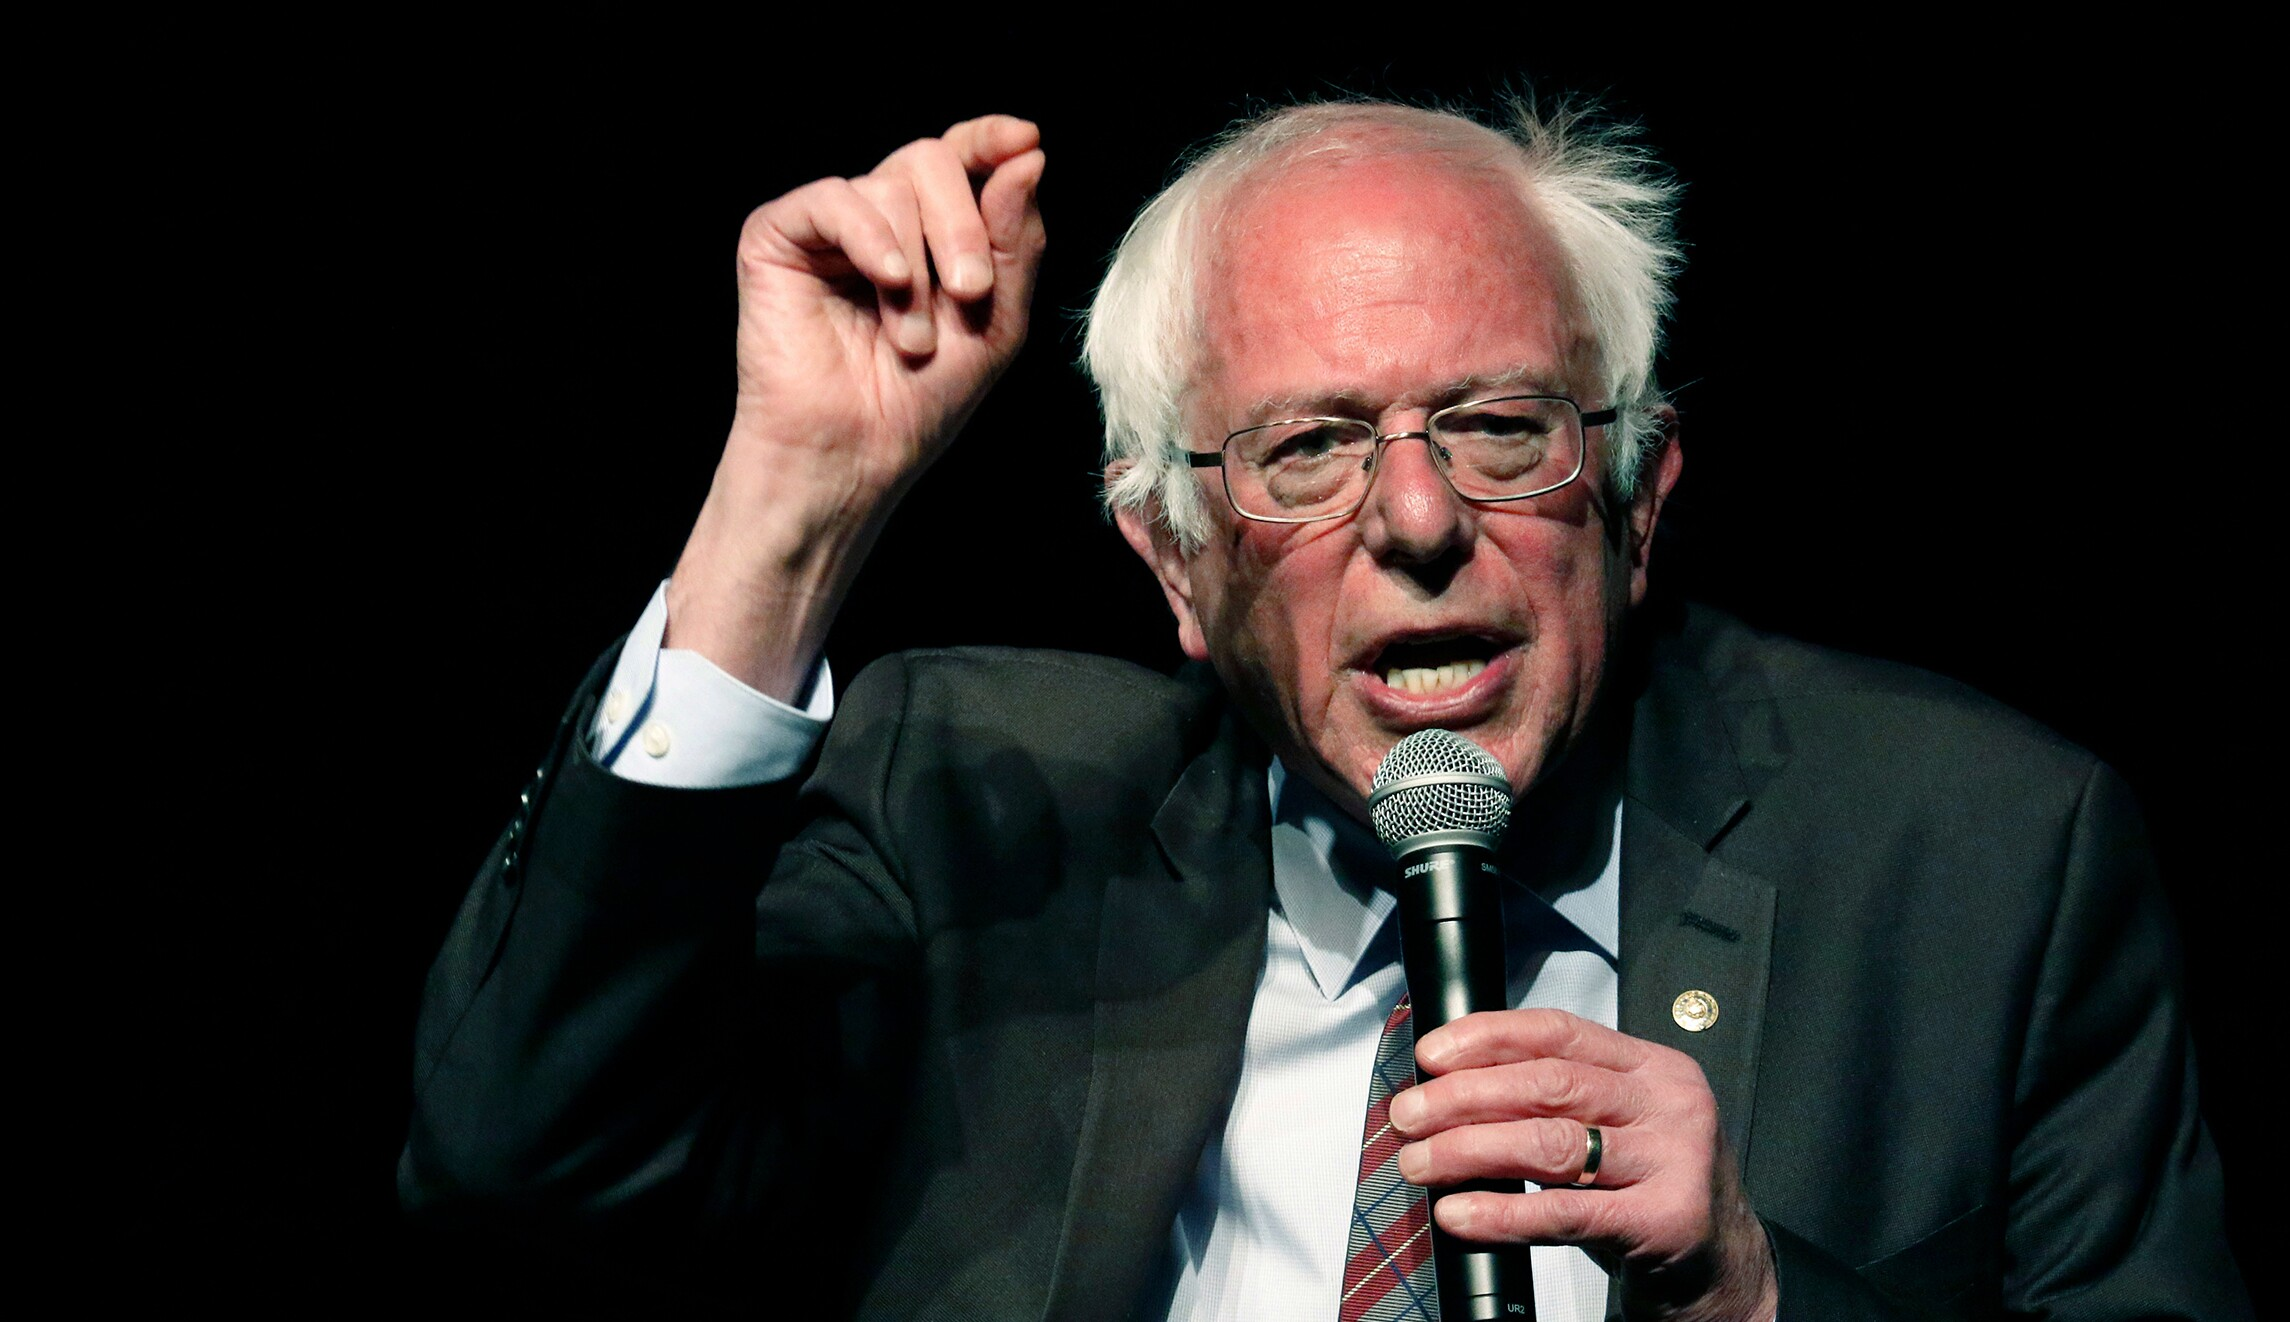 bernie sanders 2016 campaign manager says he s considering 2020